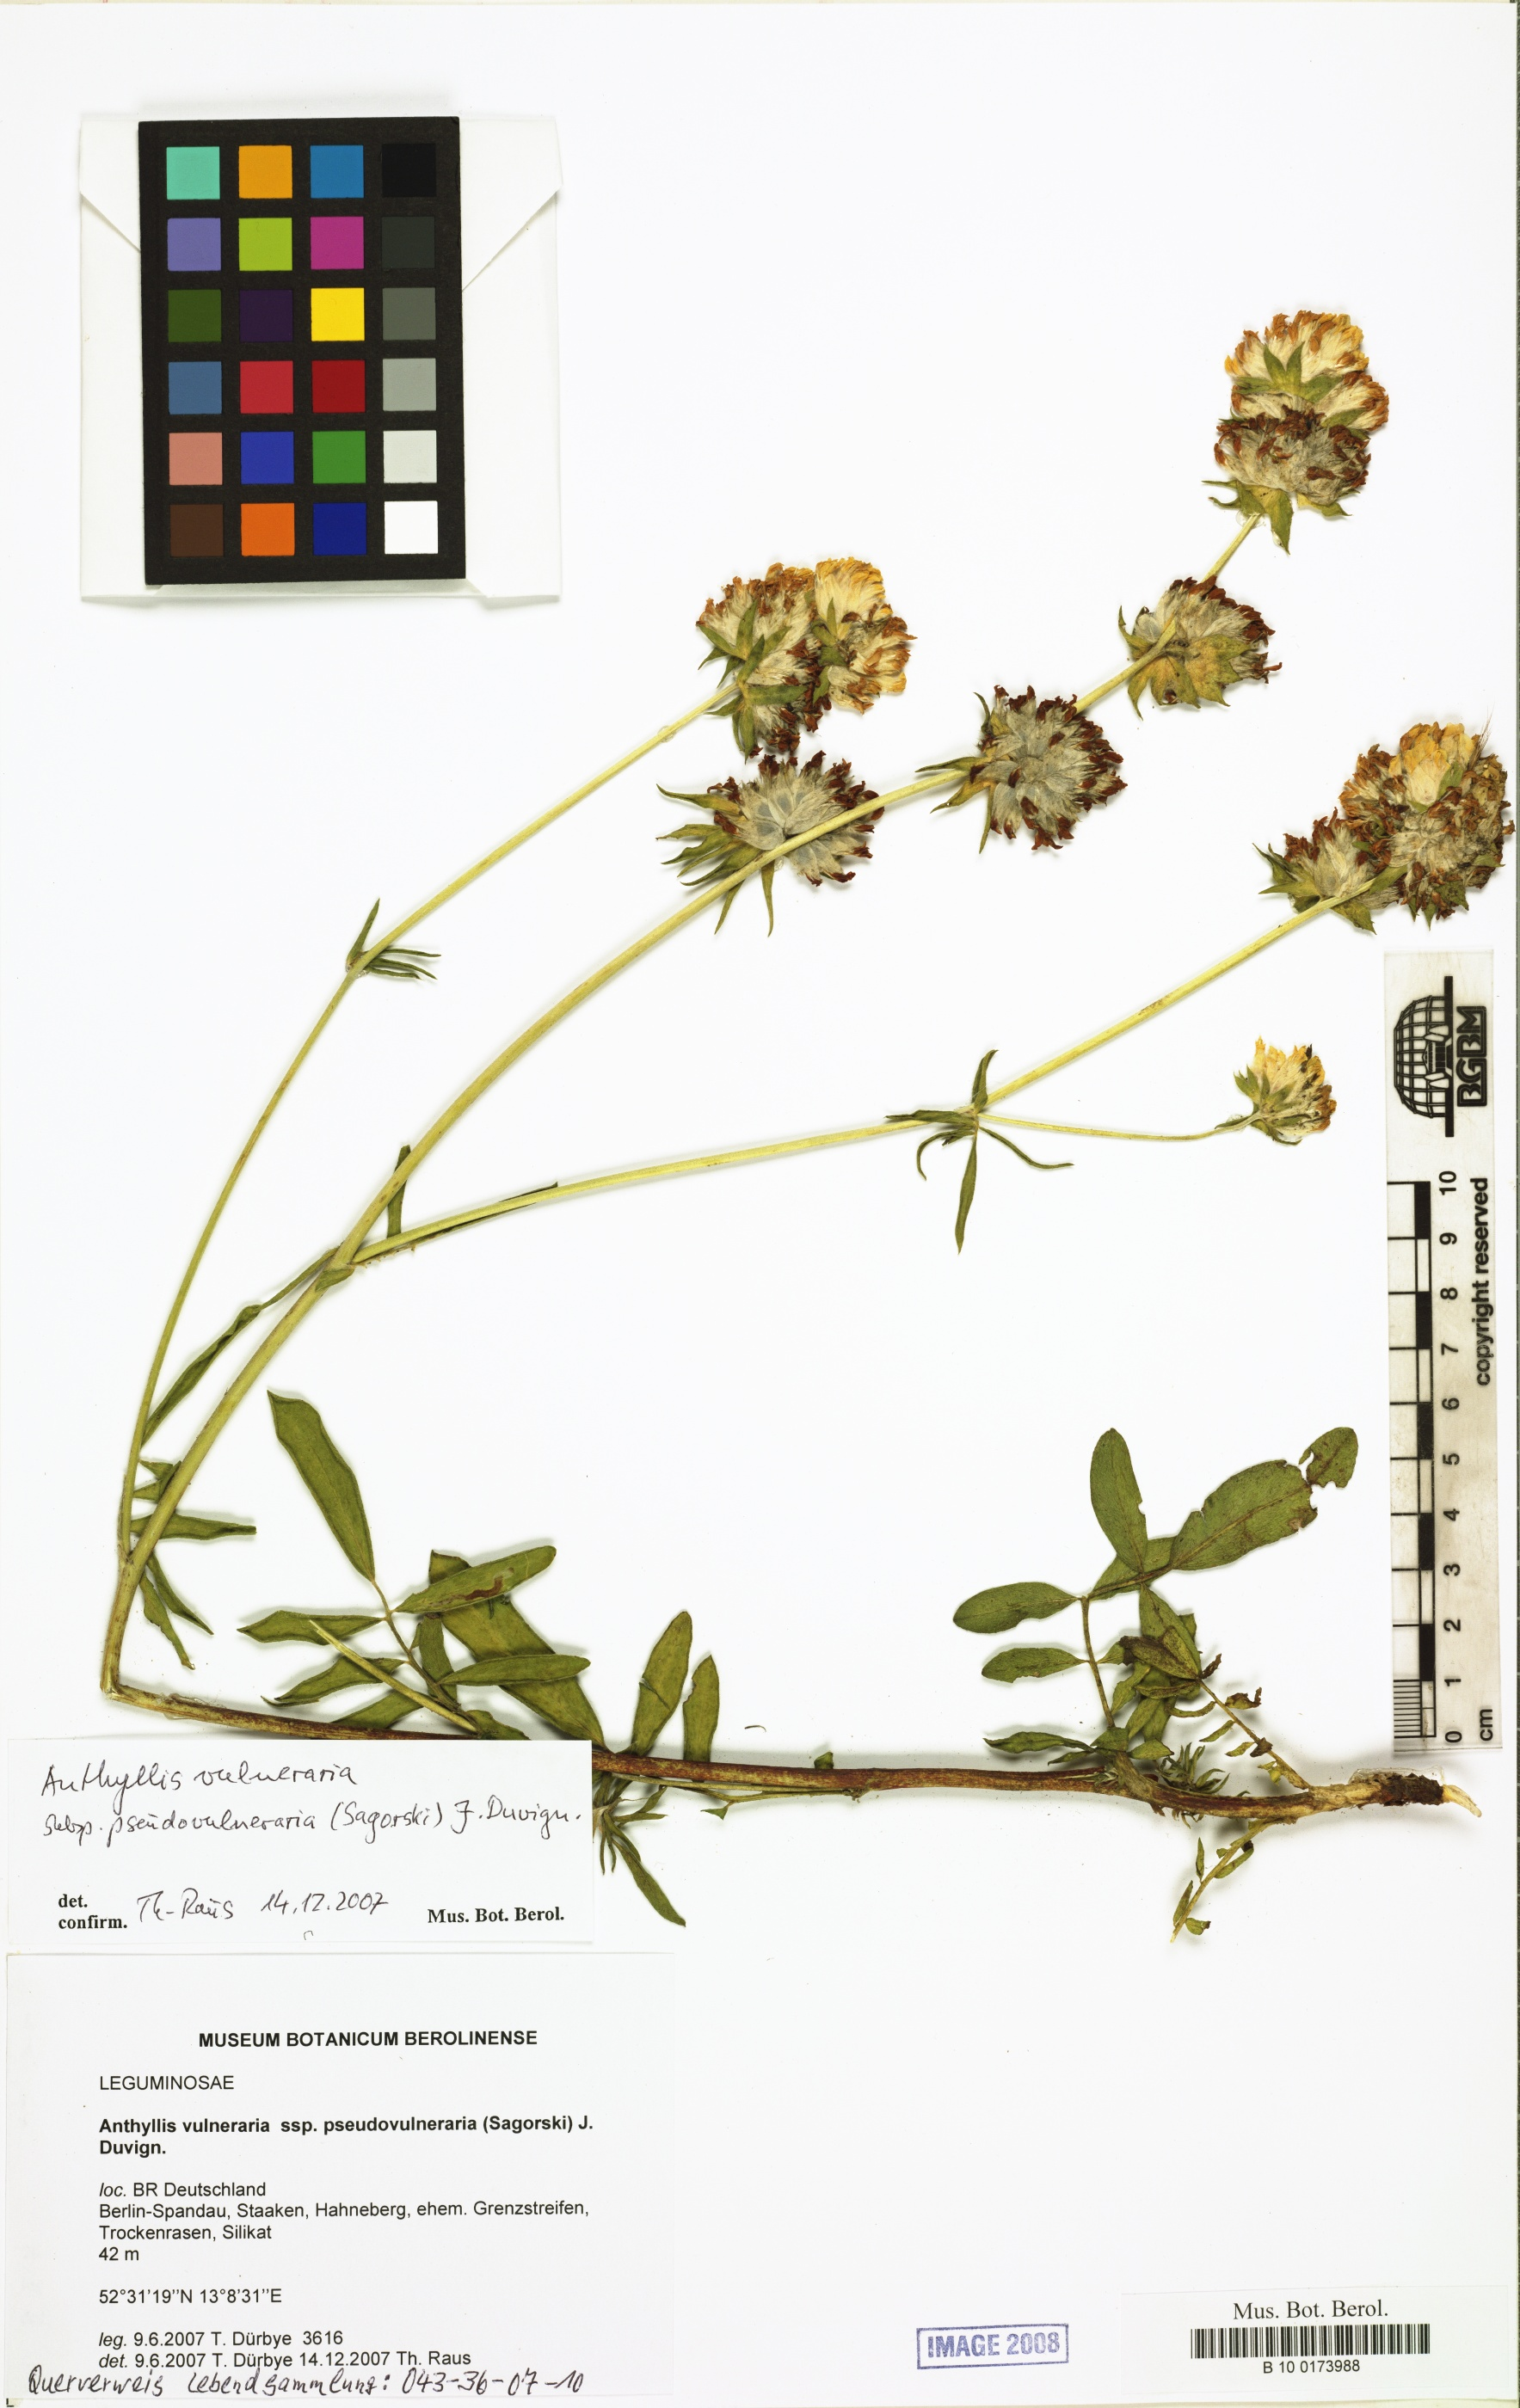 © Röpert, D. (Ed.) 2000- (continuously updated): Digital specimen images at the Herbarium Berolinense. - Published on the Internet http://ww2.bgbm.org/herbarium/ (Barcode: B 10 0173988 / ImageId: 291652) [accessed 24-Dec-12].<br>